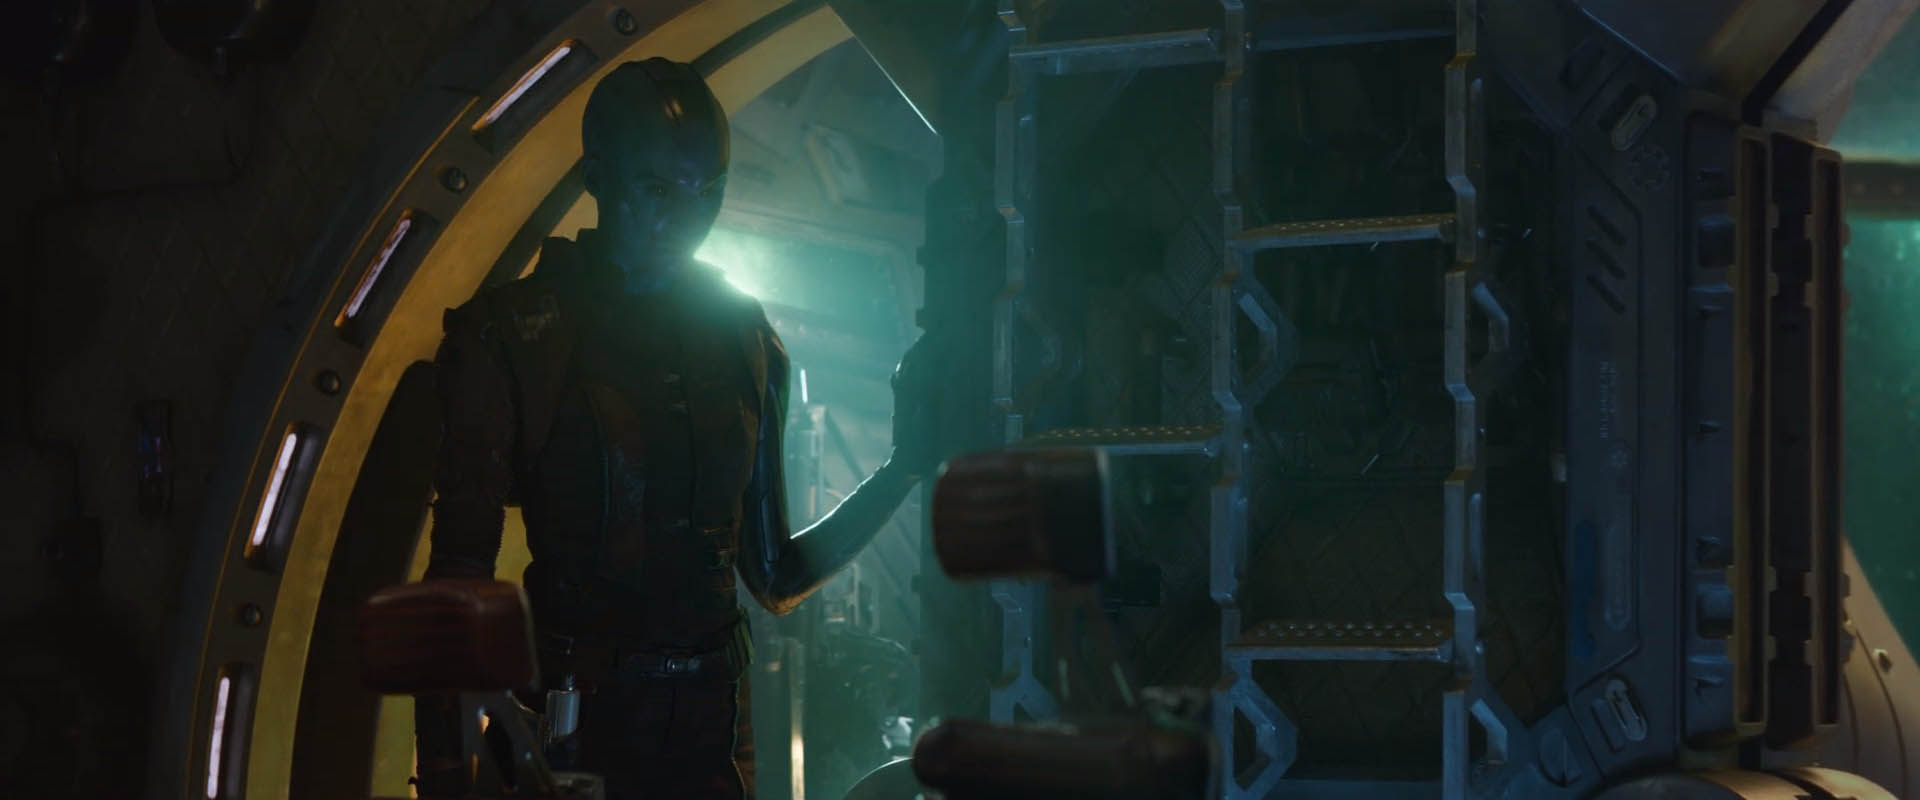 Avengers: Endgame IMAX Trailer Shows Just a Tiny Bit More ...